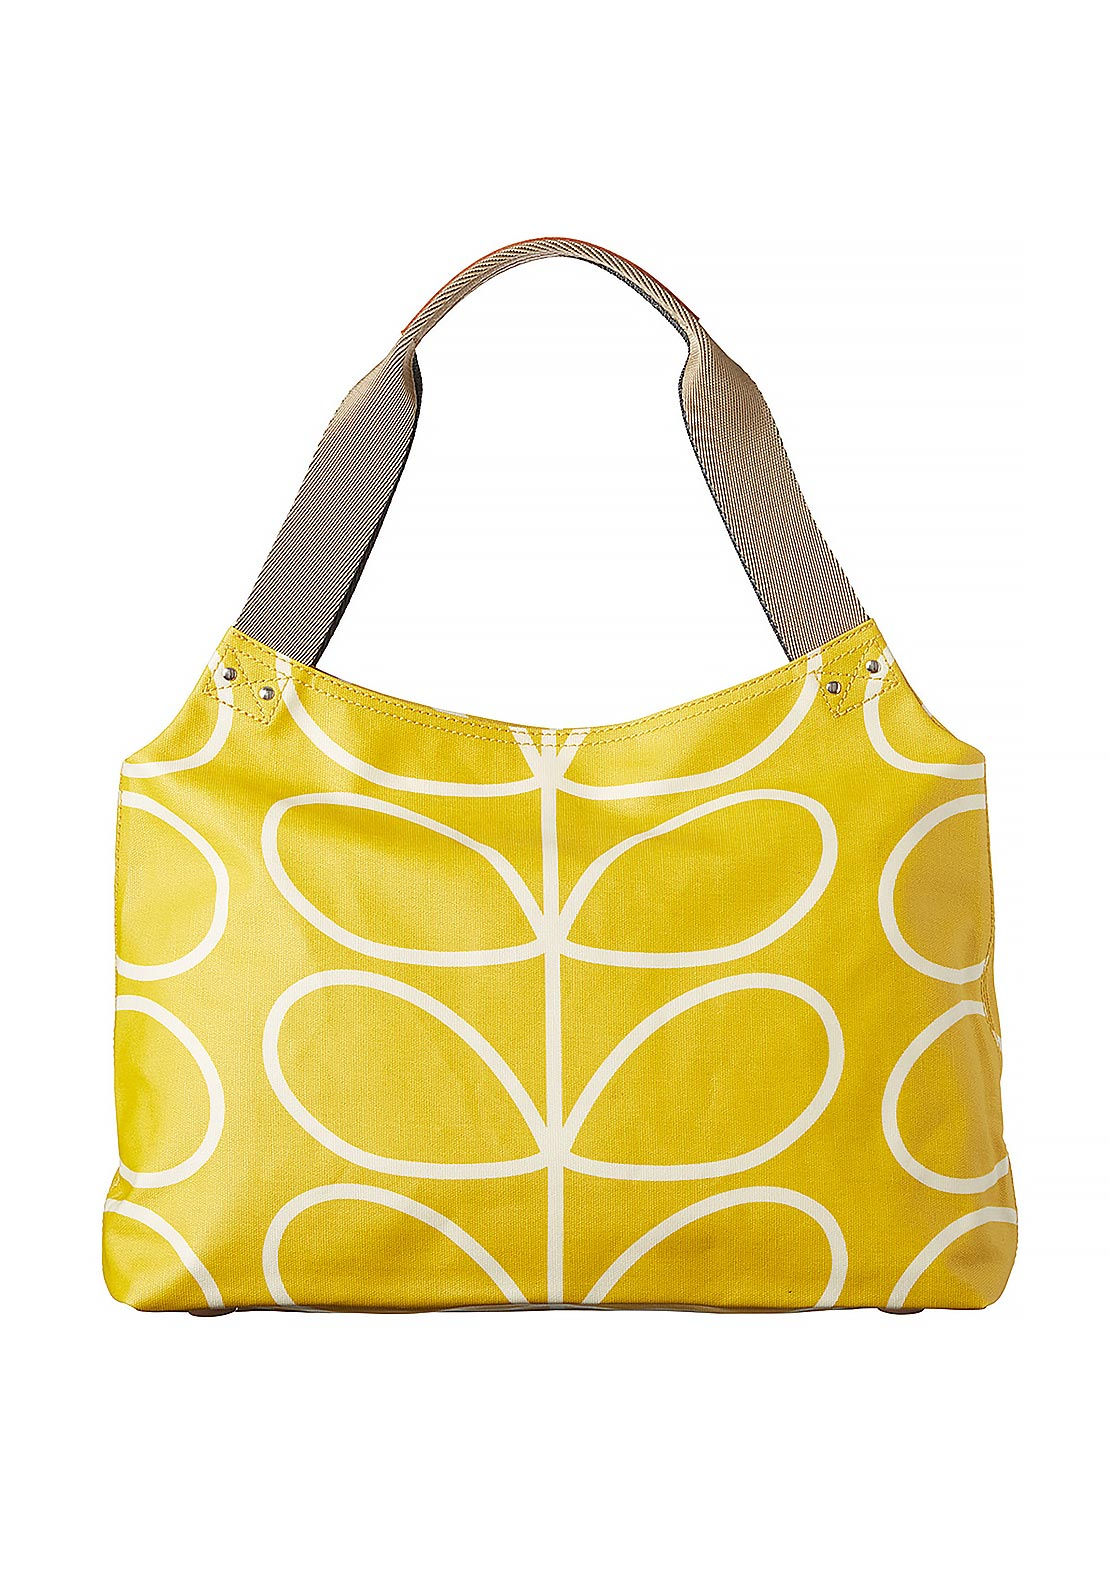 Orla Kiely Giant Linear Stem Zip Shoulder Bag, Dandelion